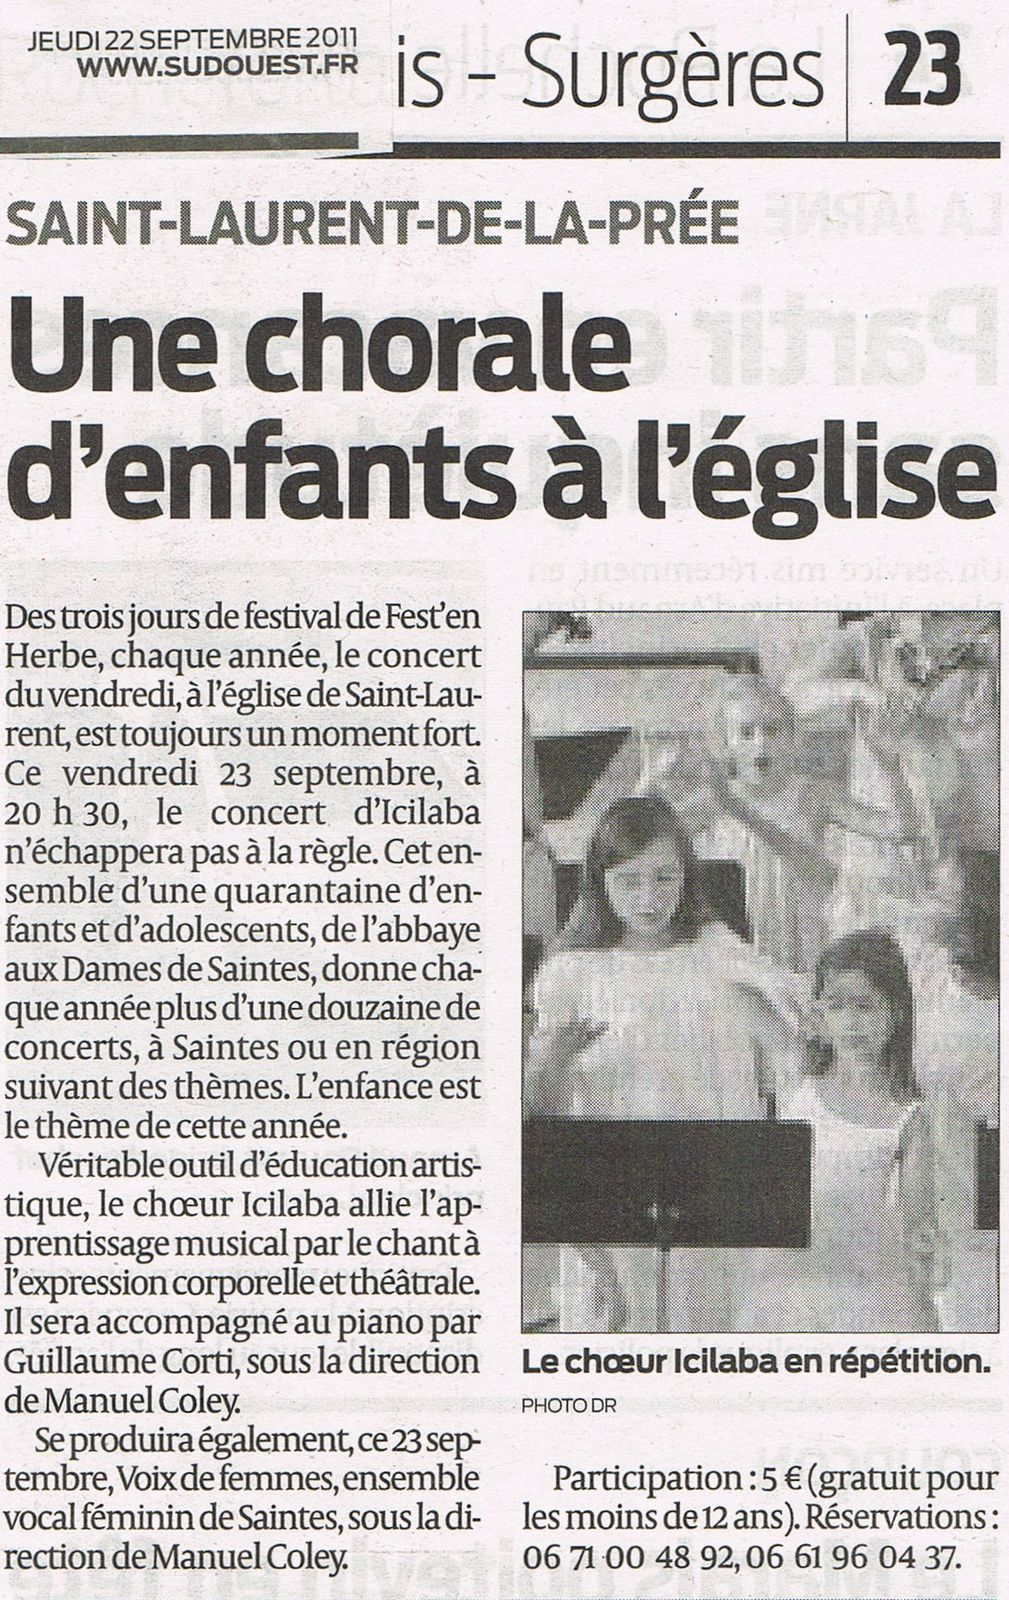 art.SO du 22 sept. 2011. Une chorale d'enfants